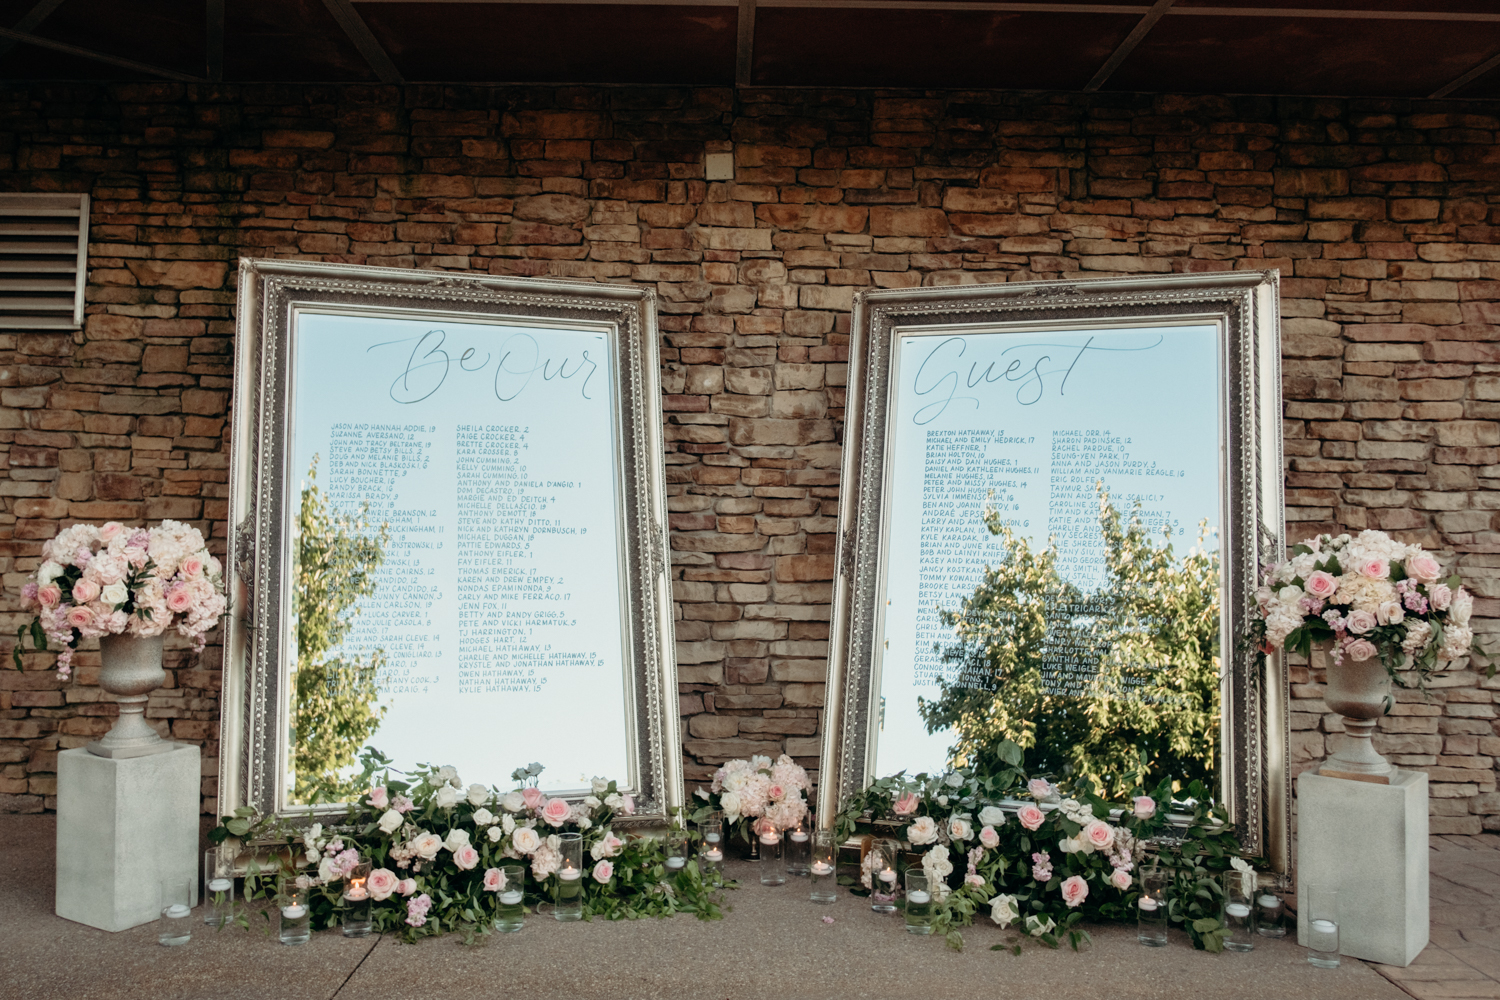 A seating chart for guests at a wedding reception is written on two large mirrors surrounded by lush florals.